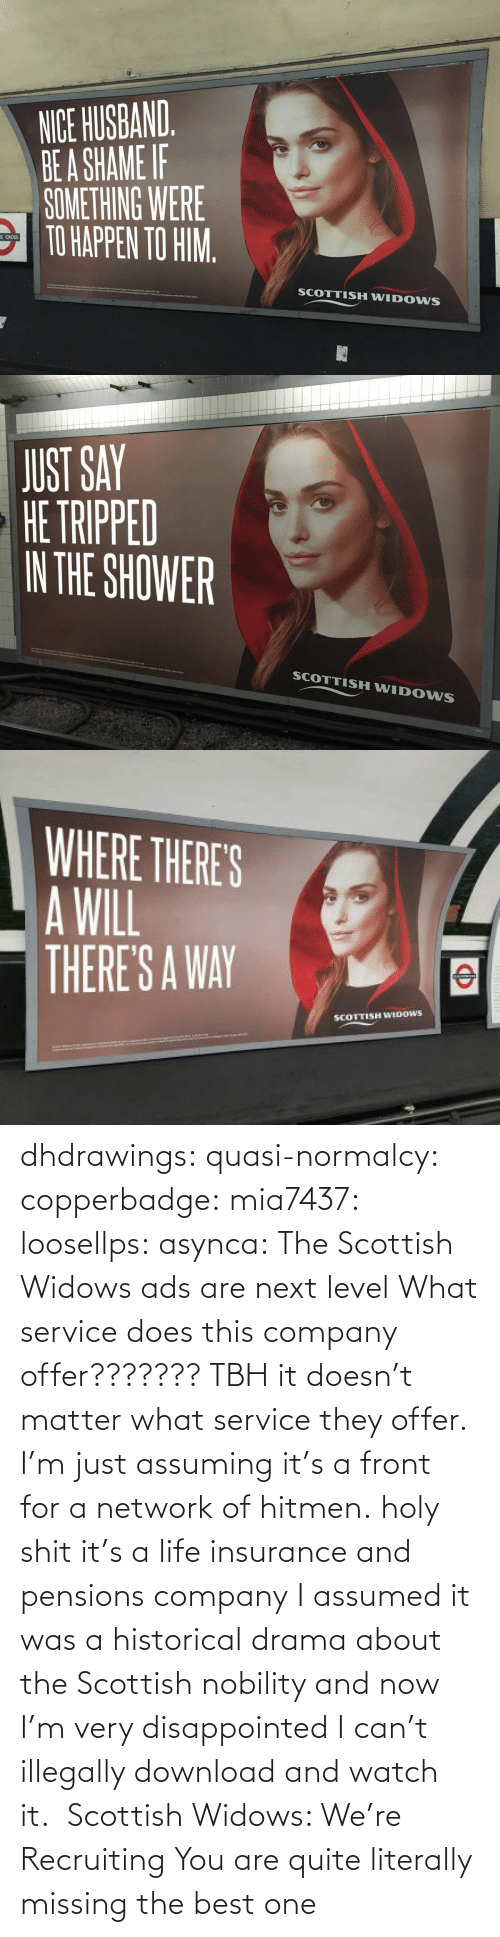 missing: dhdrawings:  quasi-normalcy:  copperbadge:  mia7437:  loosellps:  asynca: The Scottish Widows ads are next level What service does this company offer??????? TBH it doesn't matter what service they offer. I'm just assuming it's a front for a network of hitmen.  holy shit it's a life insurance and pensions company  I assumed it was a historical drama about the Scottish nobility and now I'm very disappointed I can't illegally download and watch it.     Scottish Widows: We're Recruiting    You are quite literally missing the best one